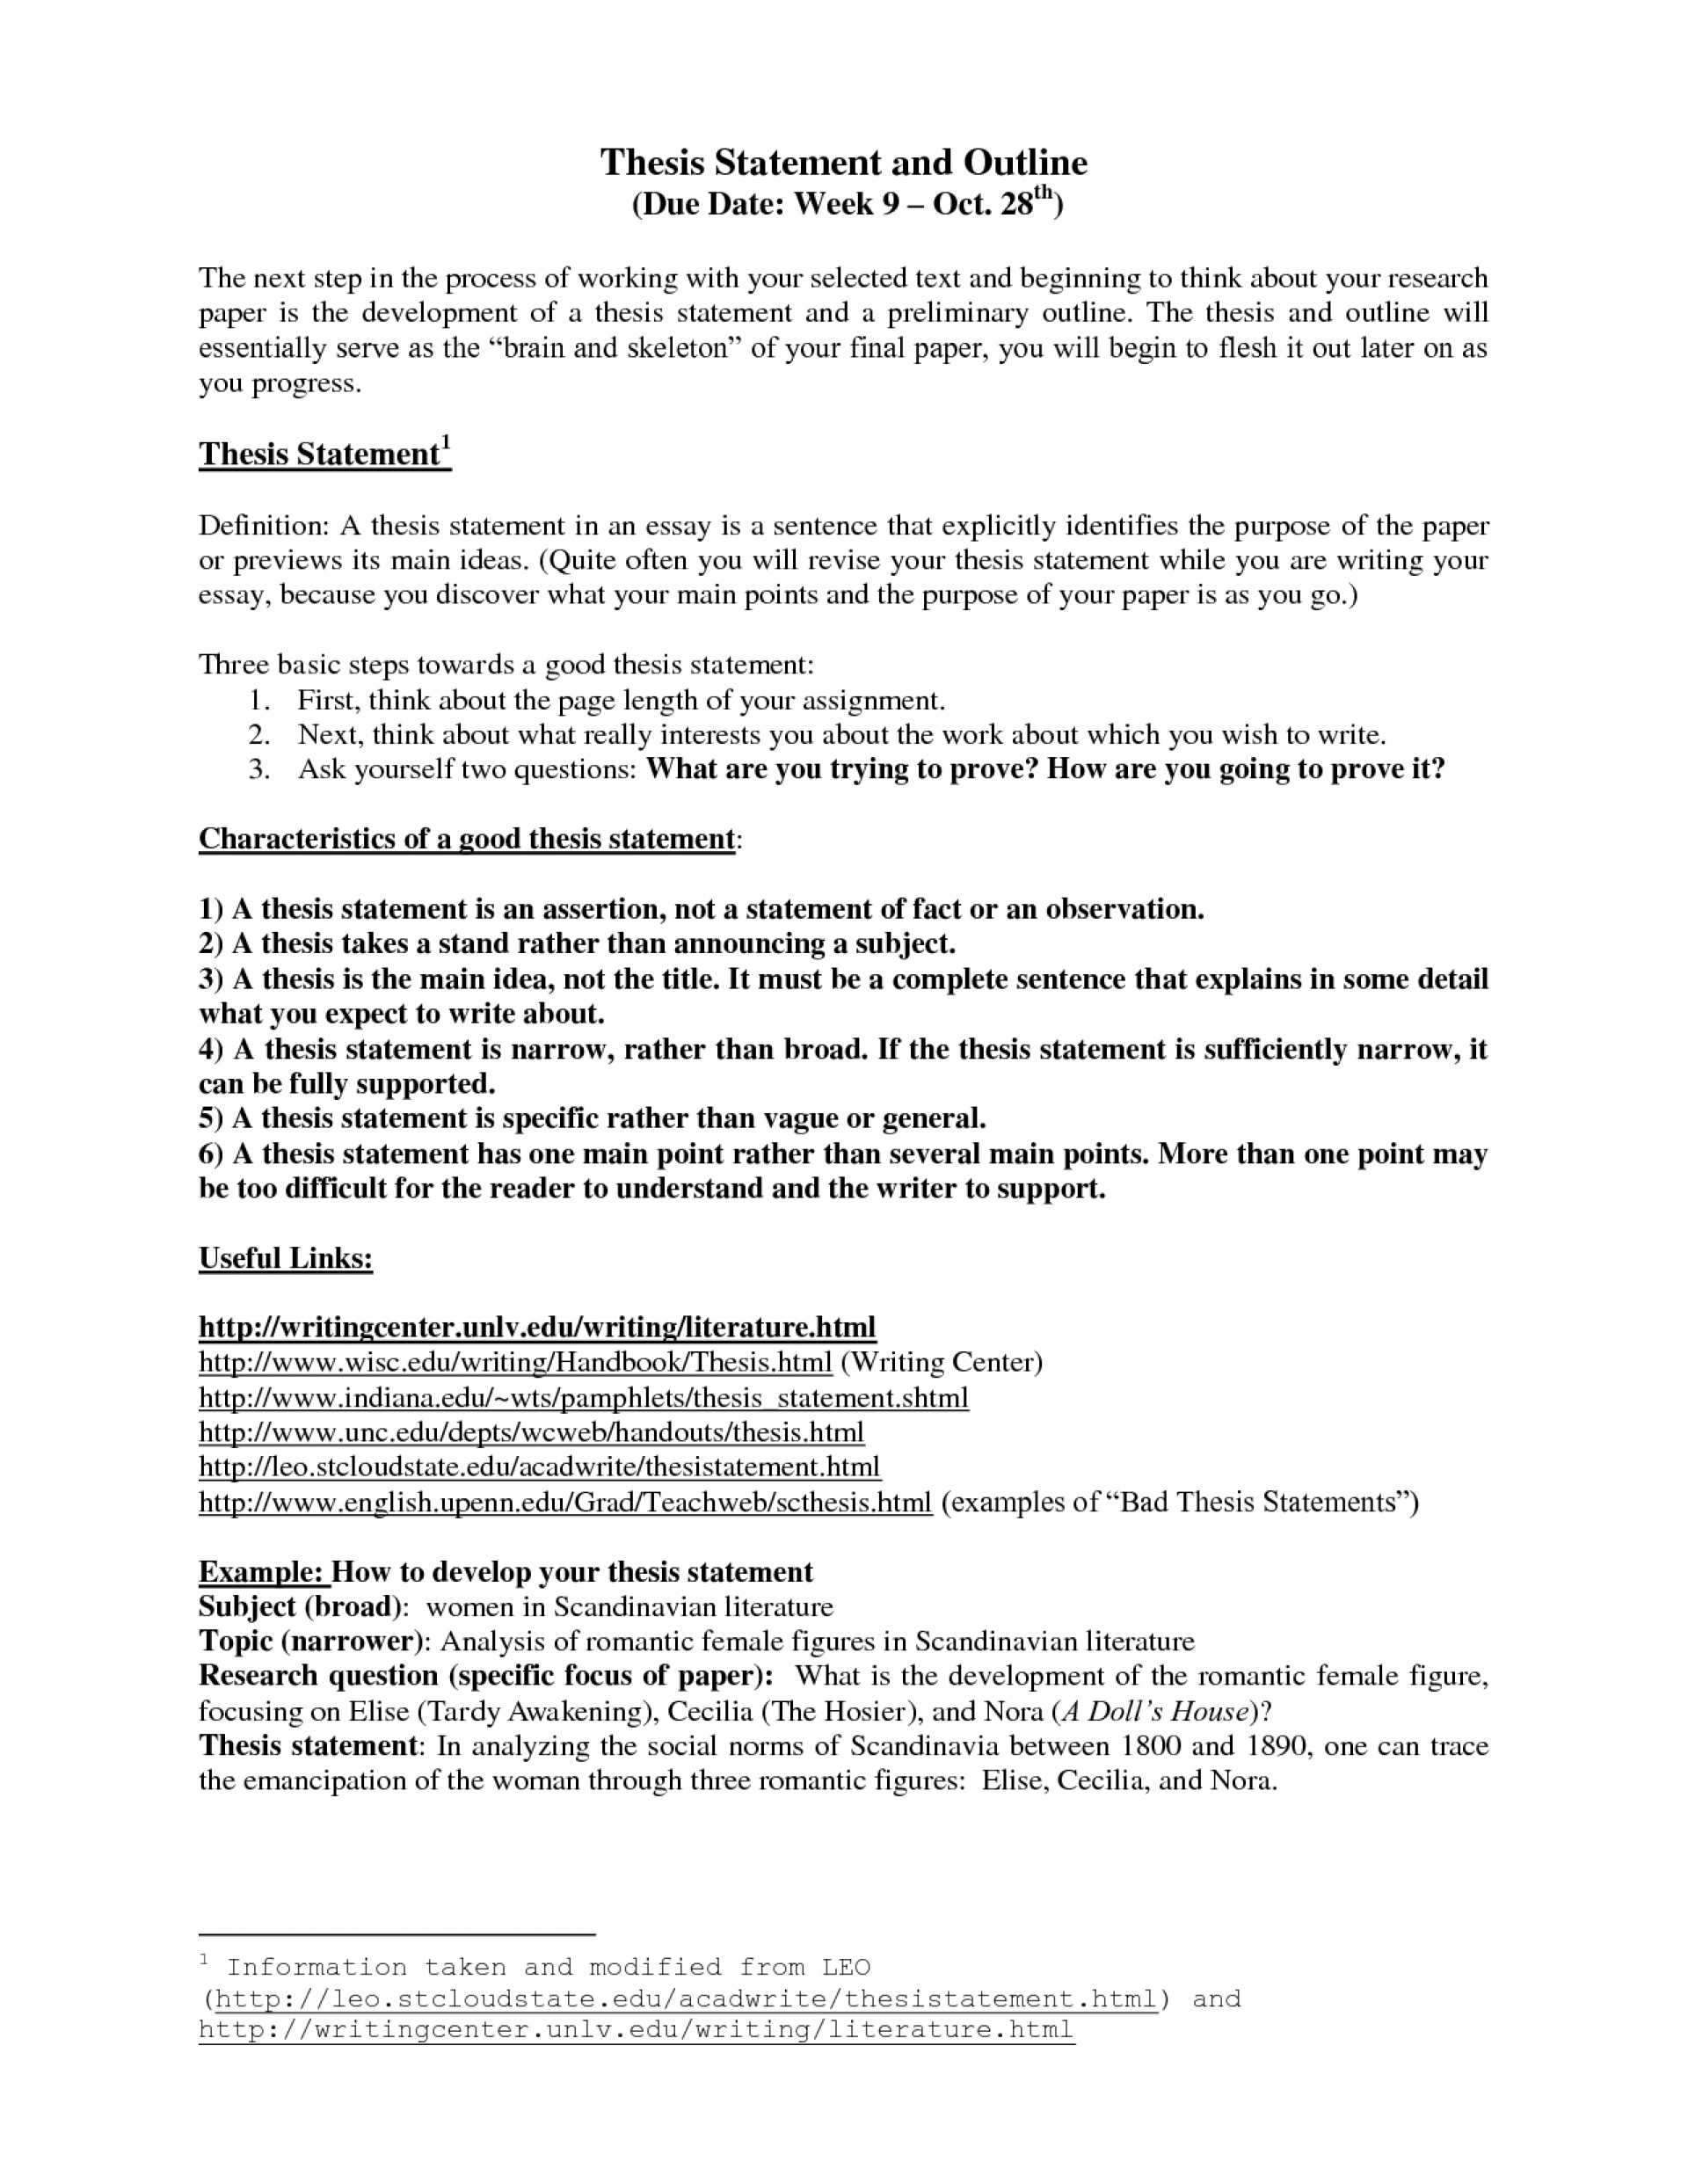 008 Research Paper Thesis Statementnd Outline Template Wx8nmdez What Is The Purpose Of Impressive A Conducting Critiquing Process Writing 1920